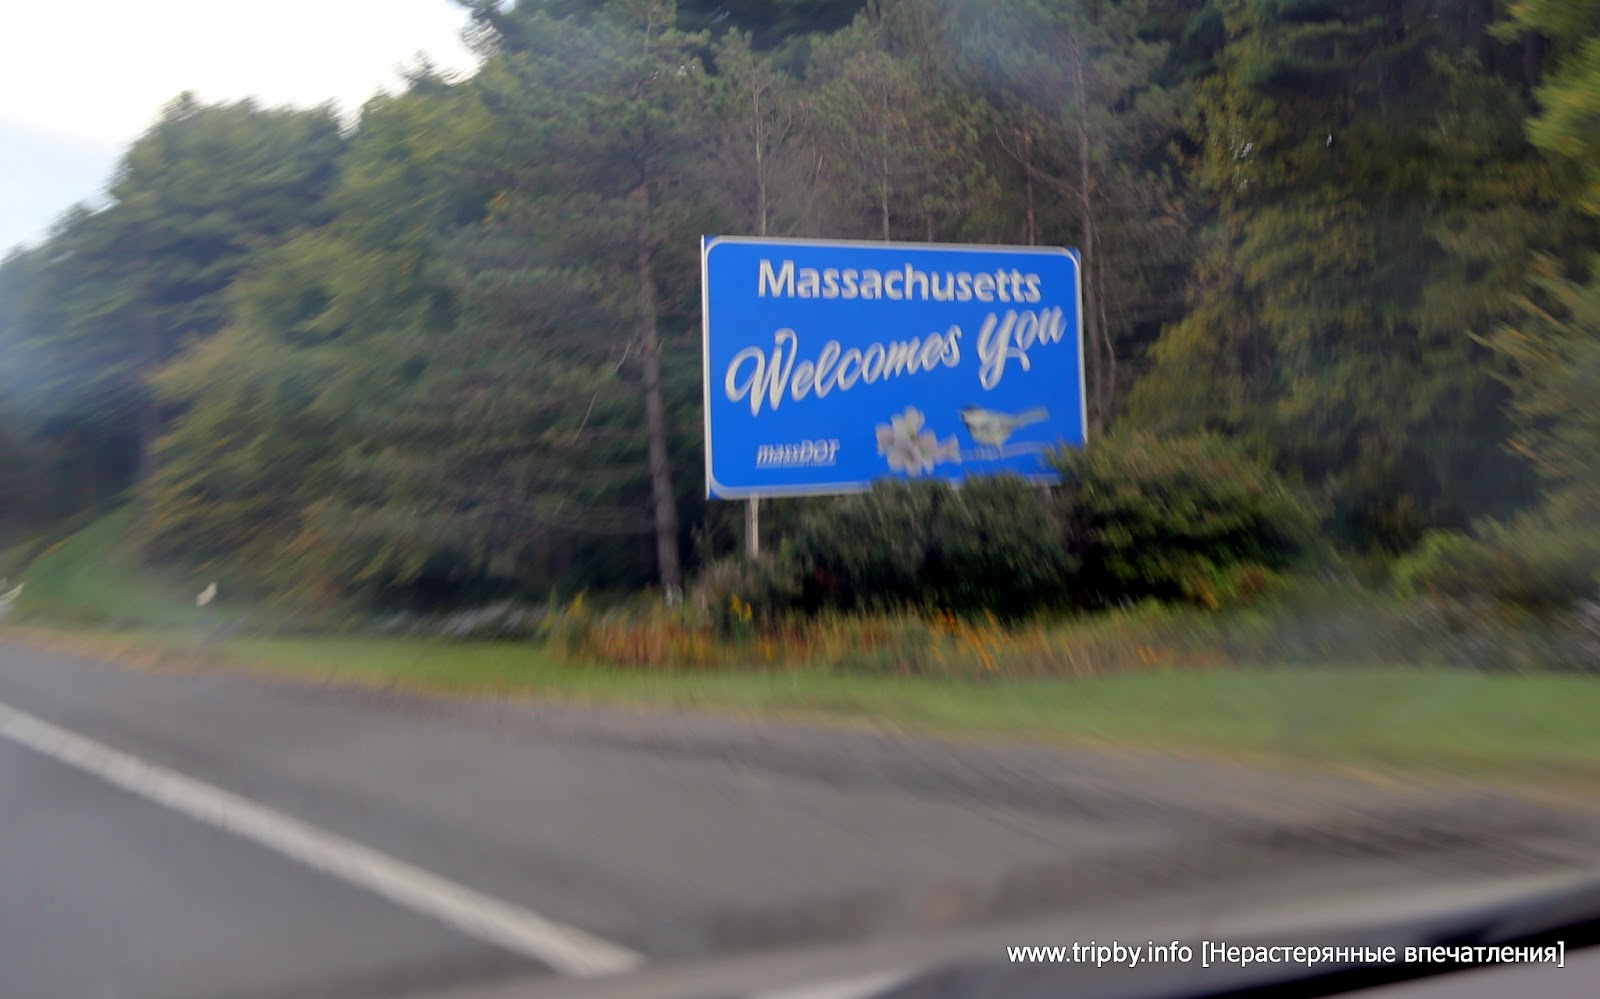 Massachusetts Welcomes You Sign (by TripBY)